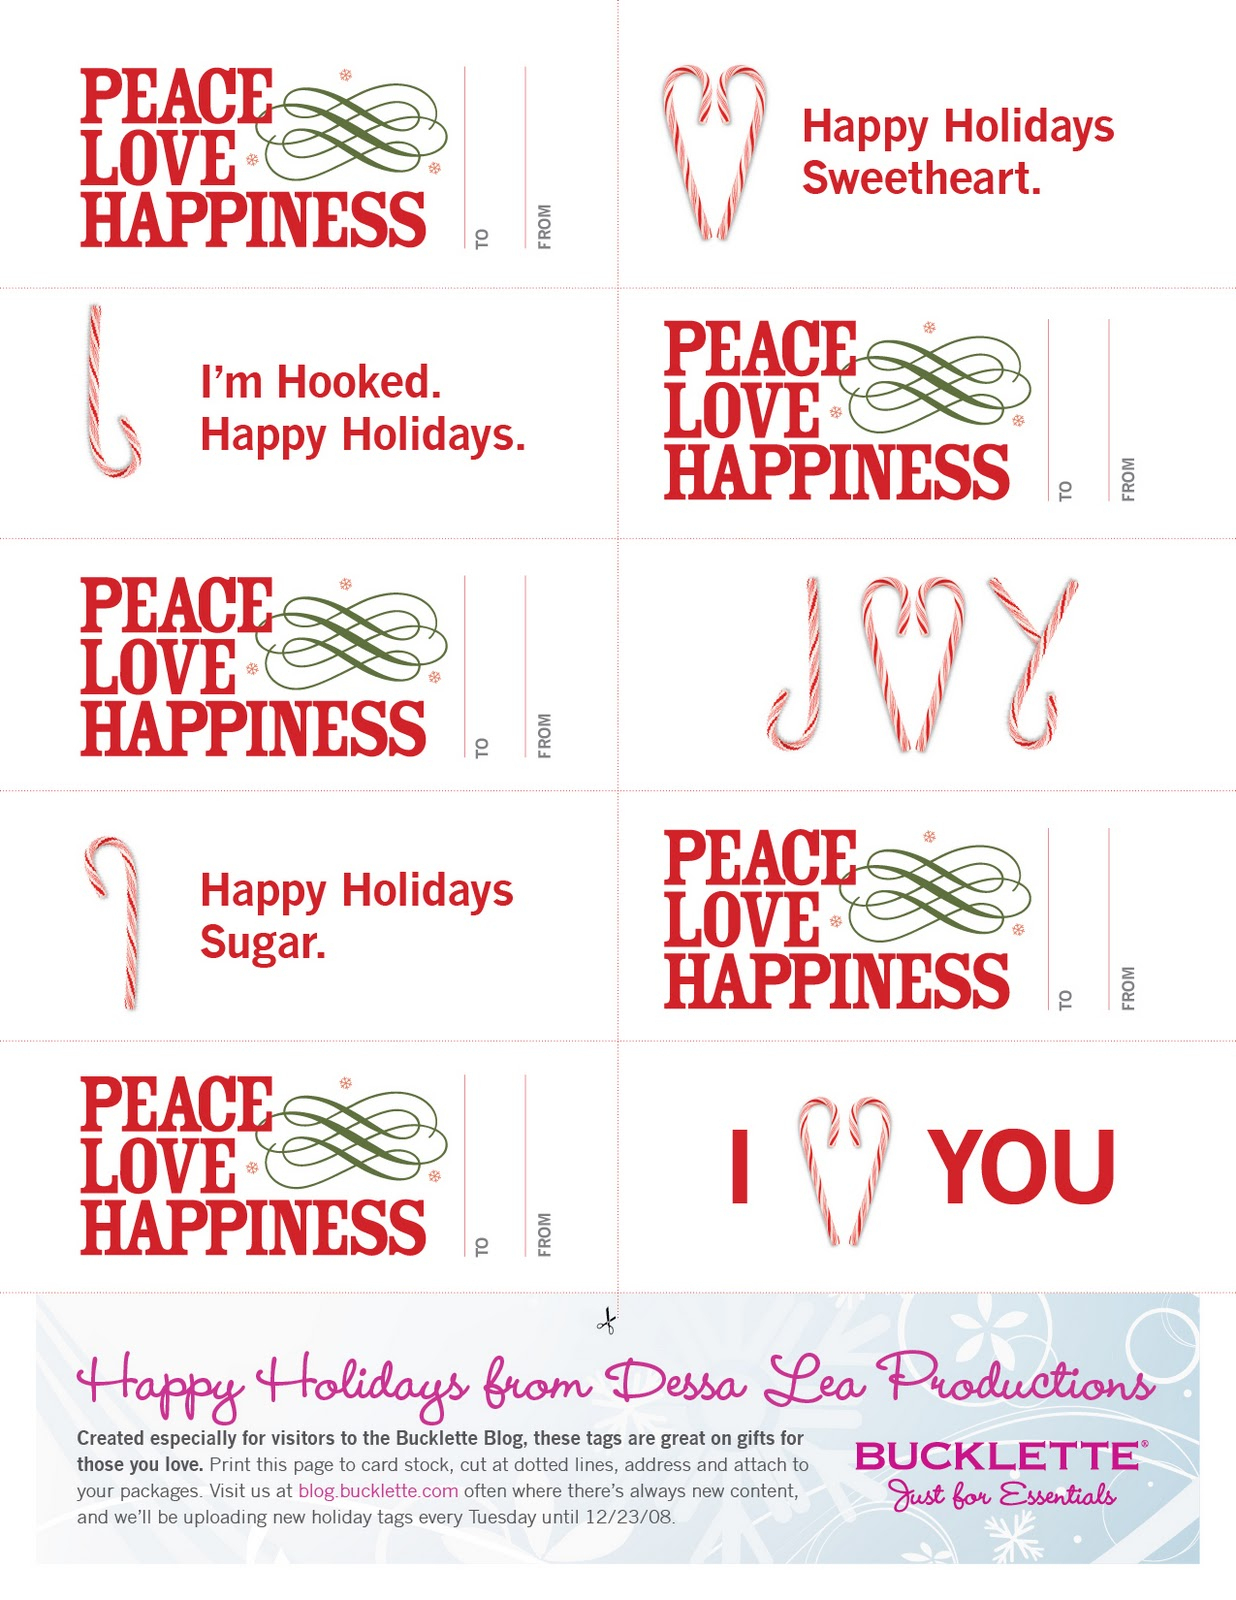 Free Christmas Printables And Gift Ideas - Making Memories With Your - Grinch Pills Free Printable